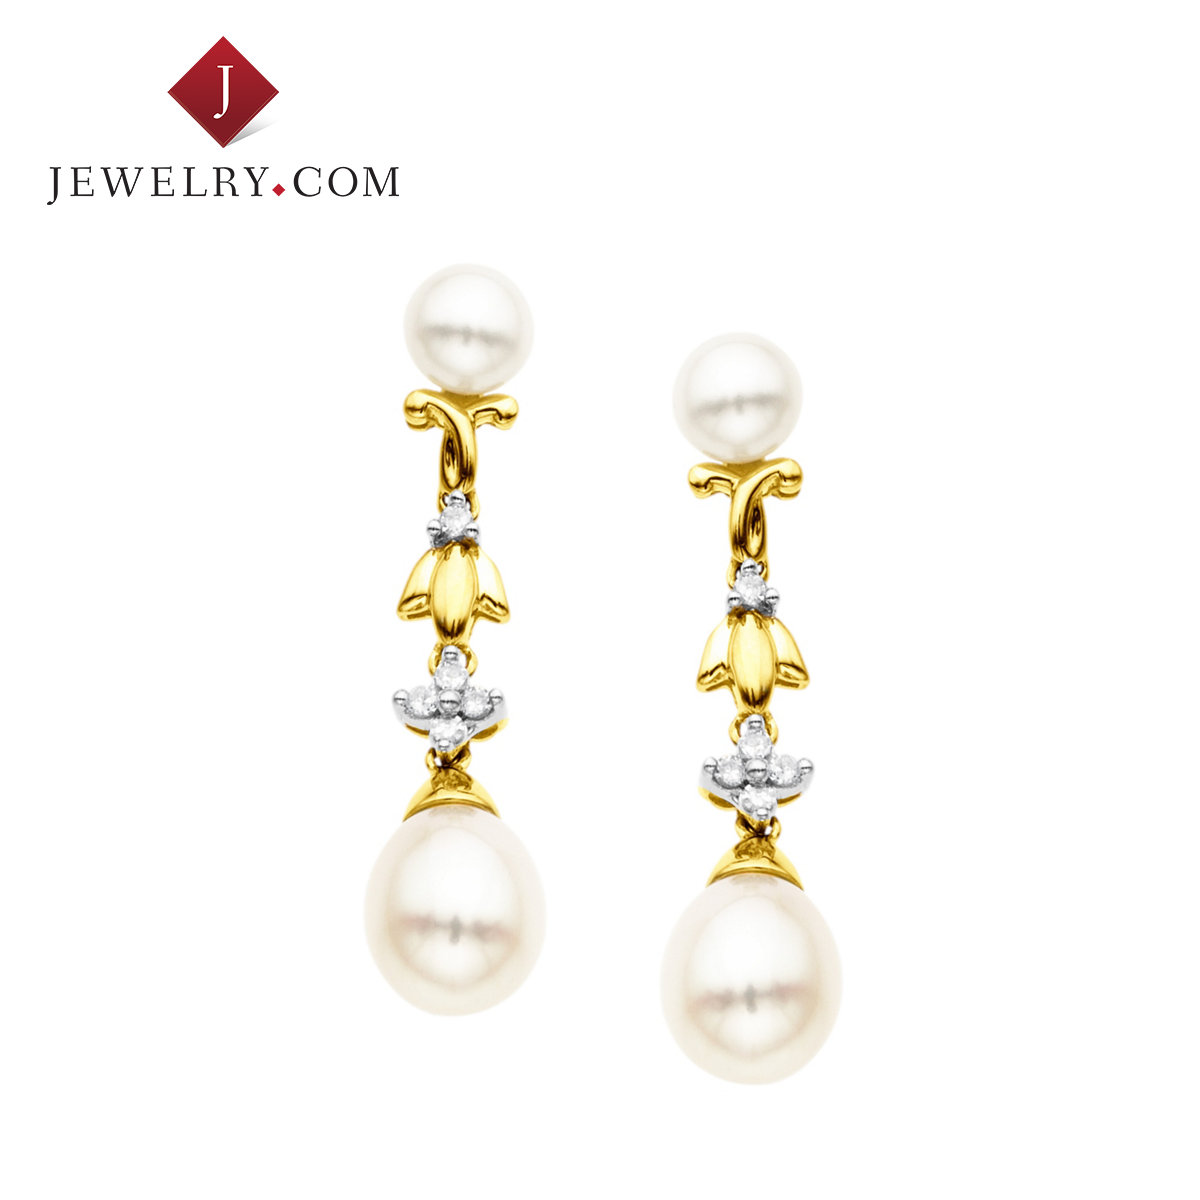 Jewelry.com official elegant 0.1 karat k gold pearl inlay diamond earrings european and american fashion new